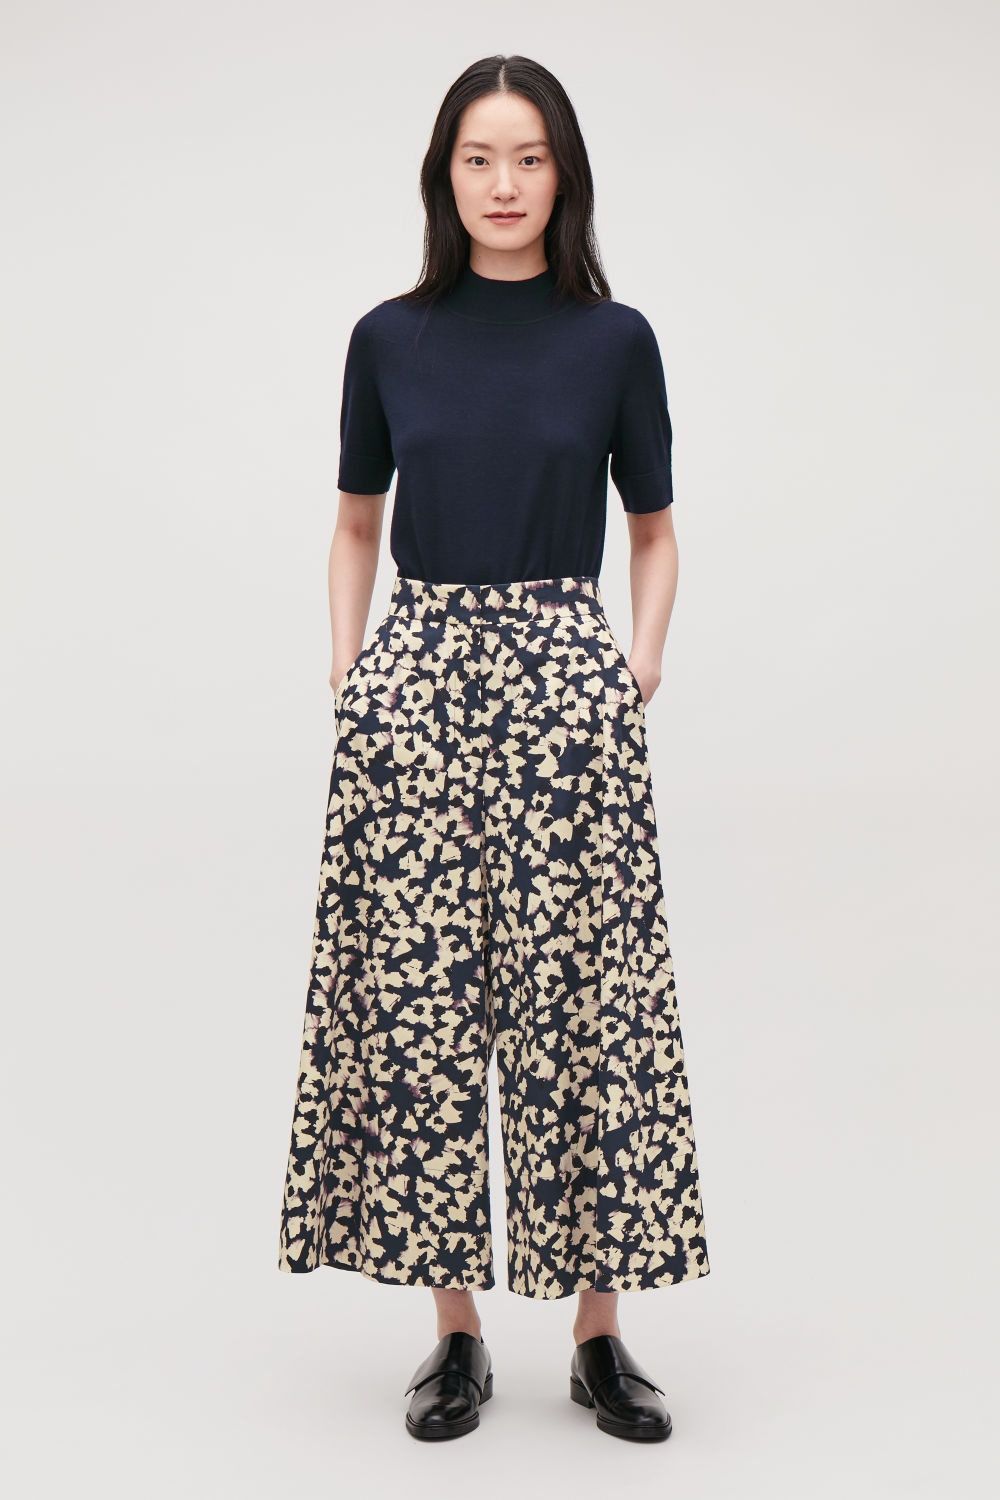 코스 COS PRINTED ELASTIC WIDE-LEG TROUSERS,Deep navy \/ cream